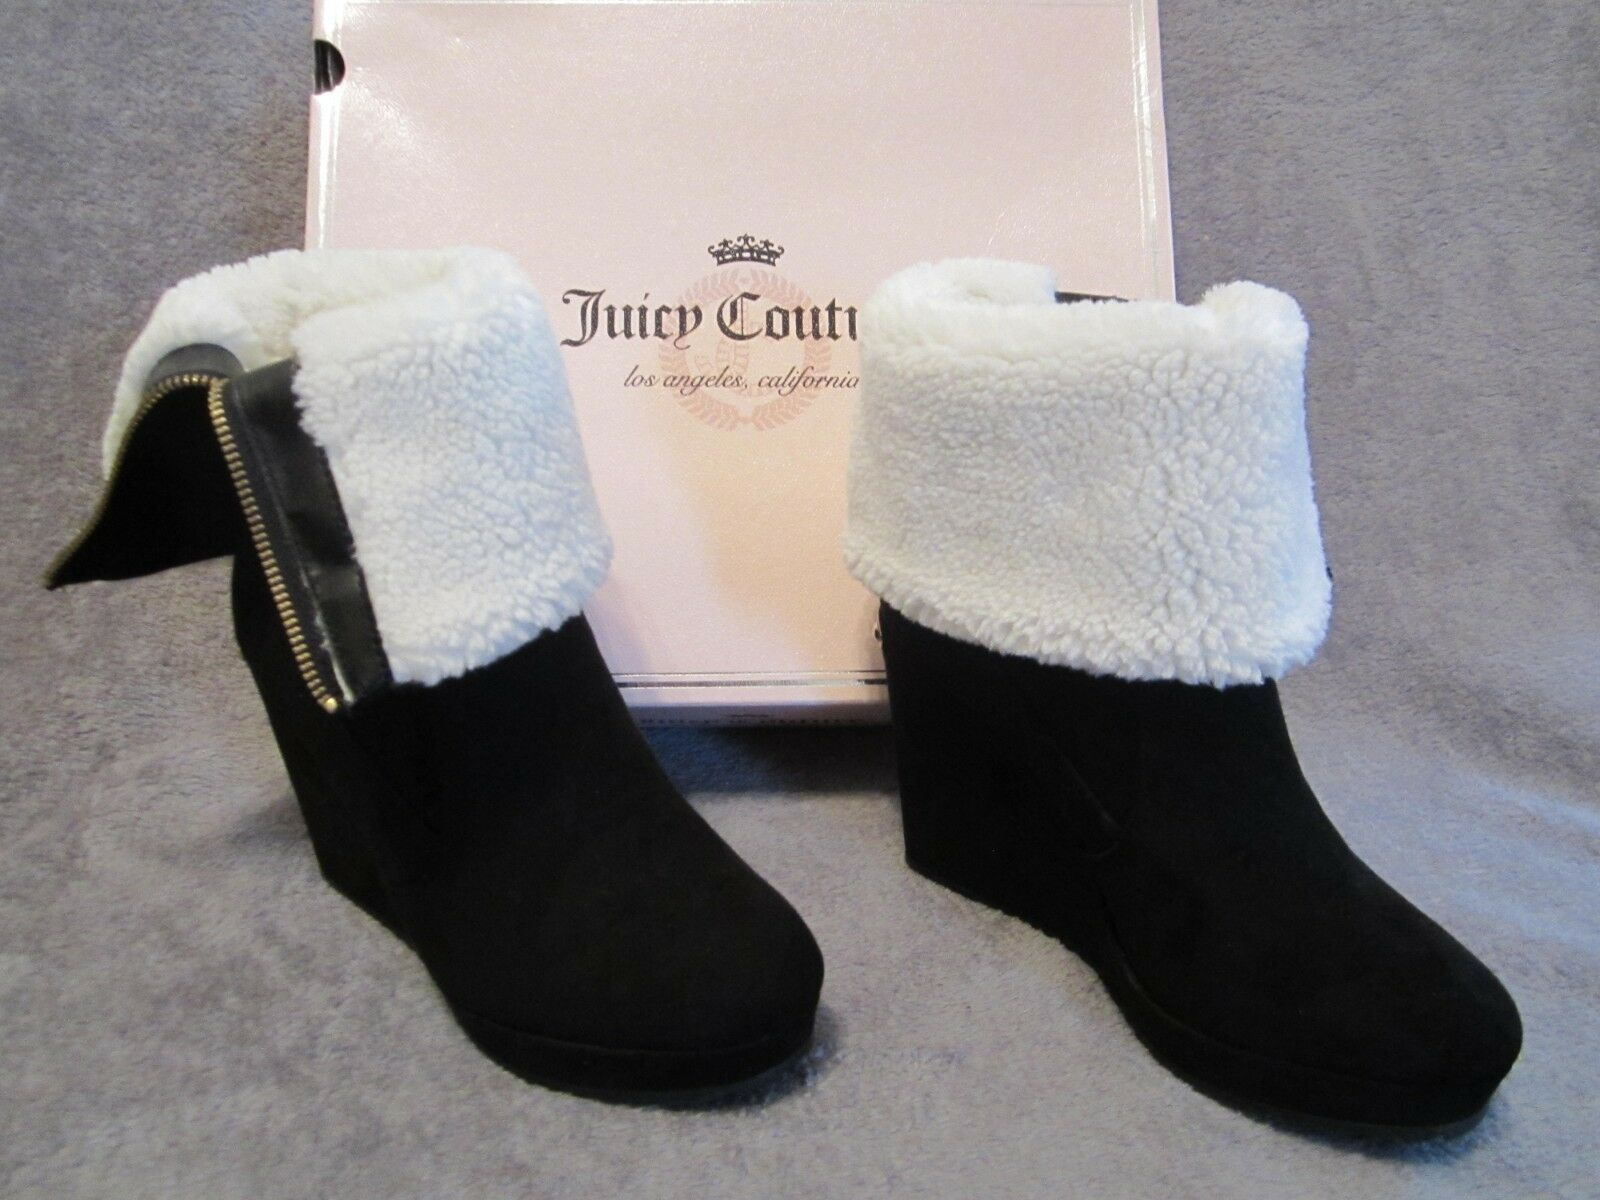 NEW JUICY COUTURE Boots KASIA Fold Over Lined Platform Platform Platform Wedge Black Boots Size 9 f48135